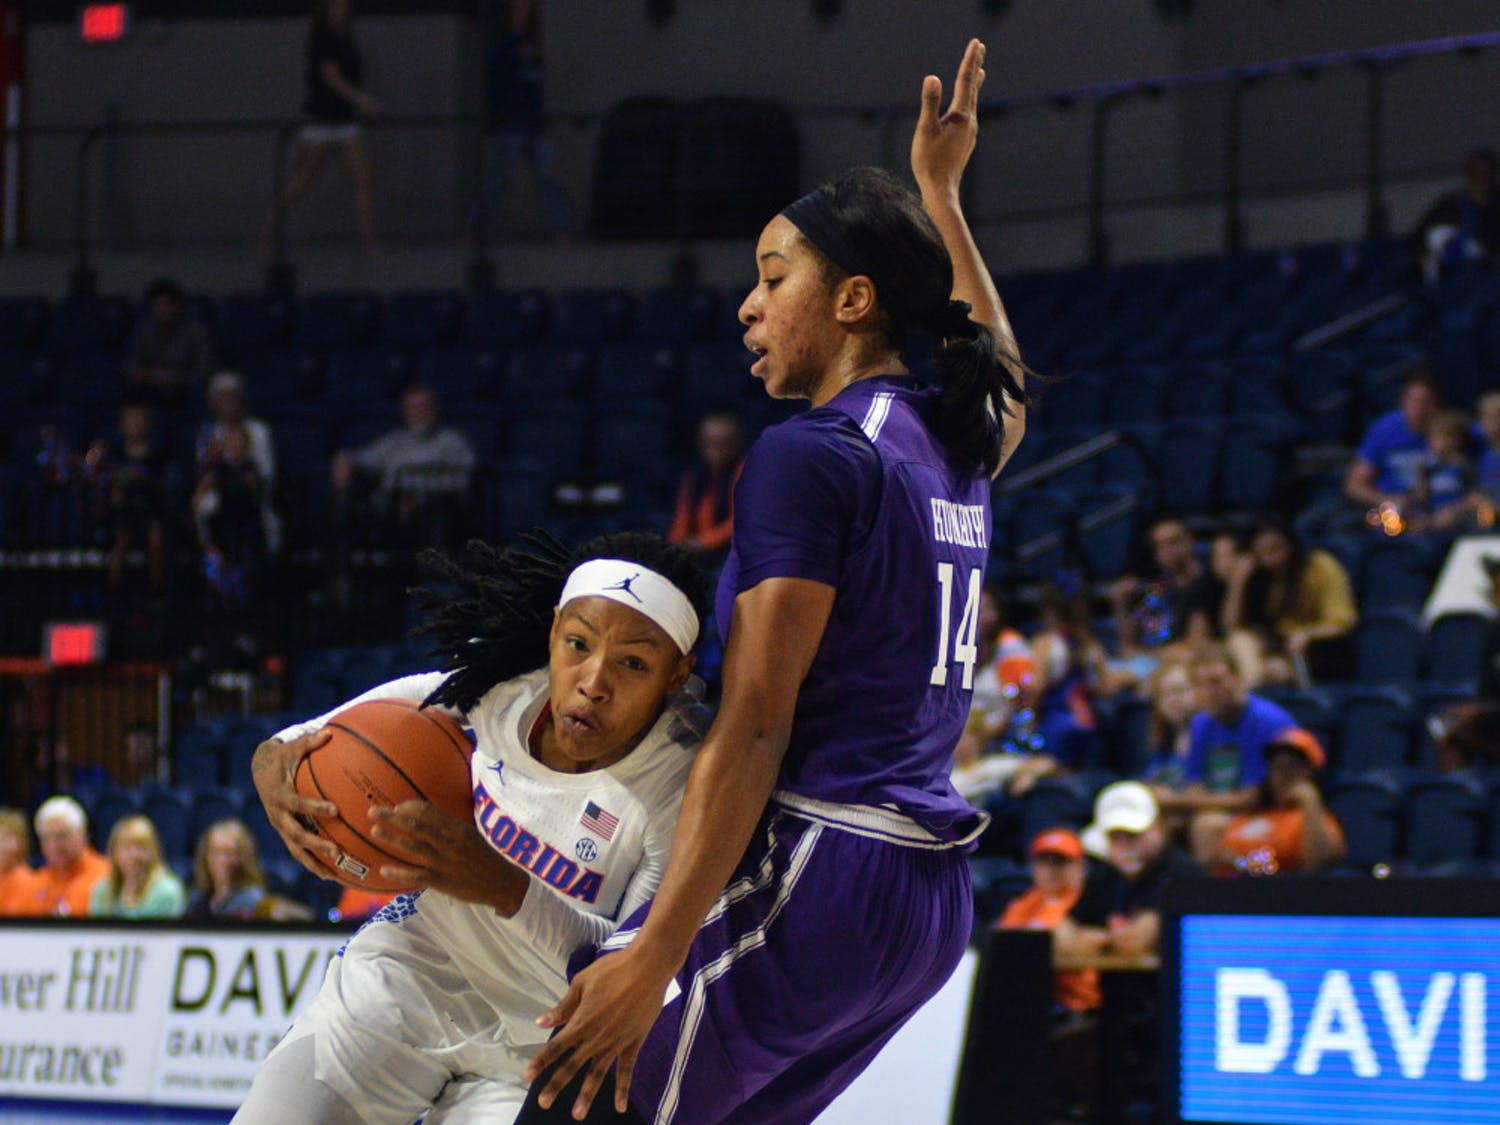 Guard Delicia Washington scored 22 points at Indiana, but the Gators fell to the Hoosiers 83-64 despite her effort.